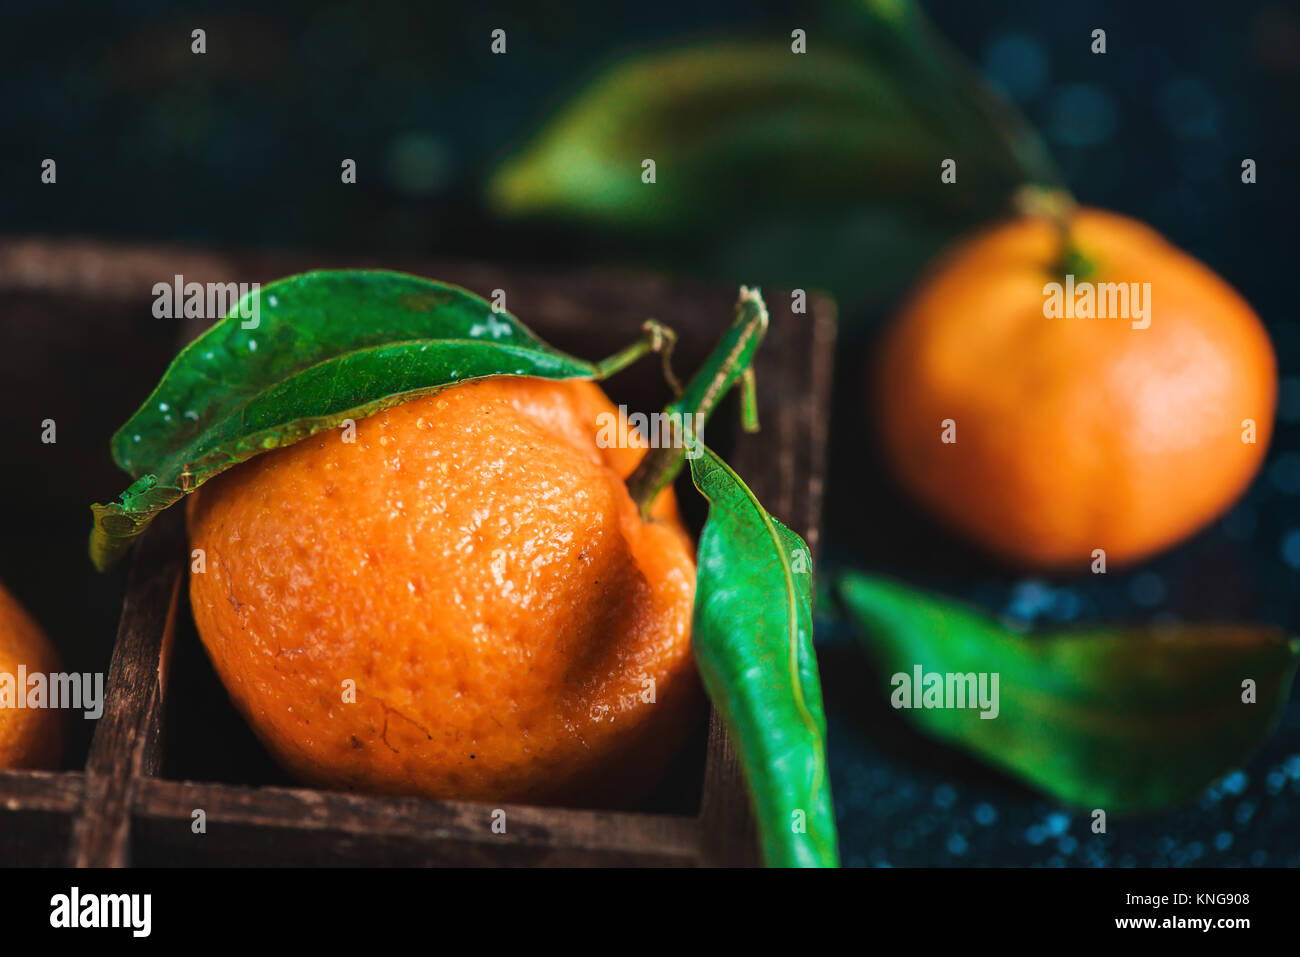 Close-up of tangerines in a wooden case on a dark background. Water drops on a surface. Dark food photography with - Stock Image